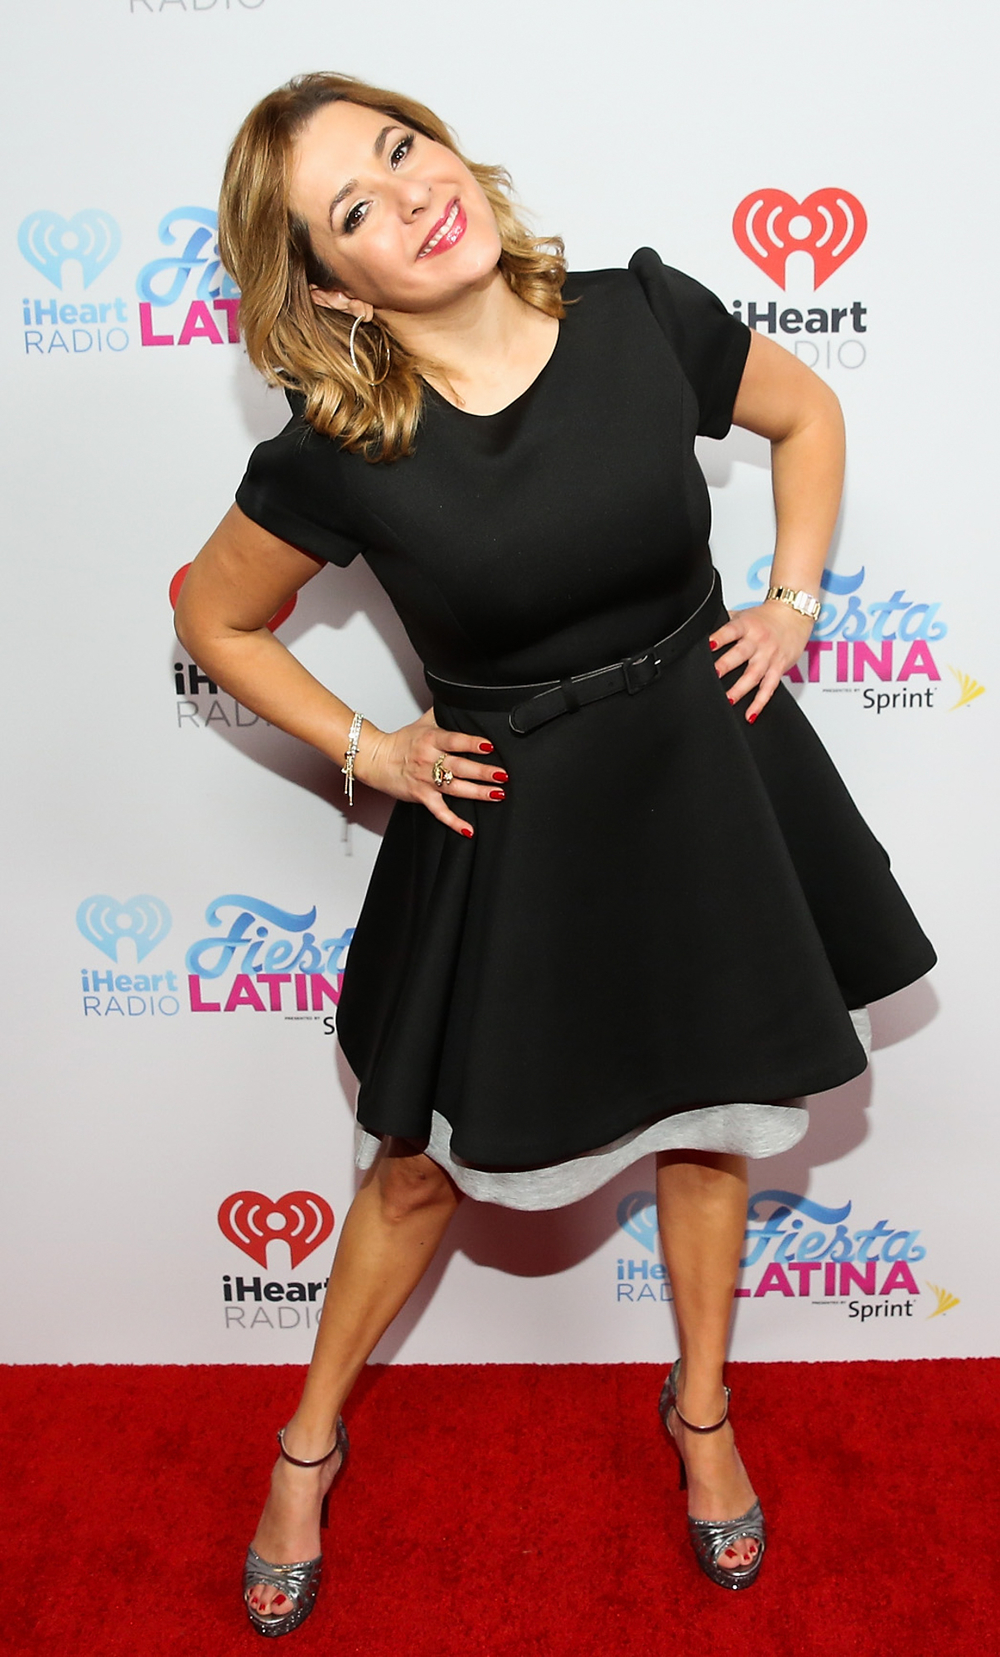 MIAMI, FL - NOVEMBER 07:  Ana Maria Conseco, fashion detail, attends iHeartRadio Fiesta Latina presented by Sprint at American Airlines Arena on November 7, 2015 in Miami, Florida.  (Photo by Aaron Davidson/Getty Images for iHeartMedia) *** Local Caption *** Ana Maria Conseco